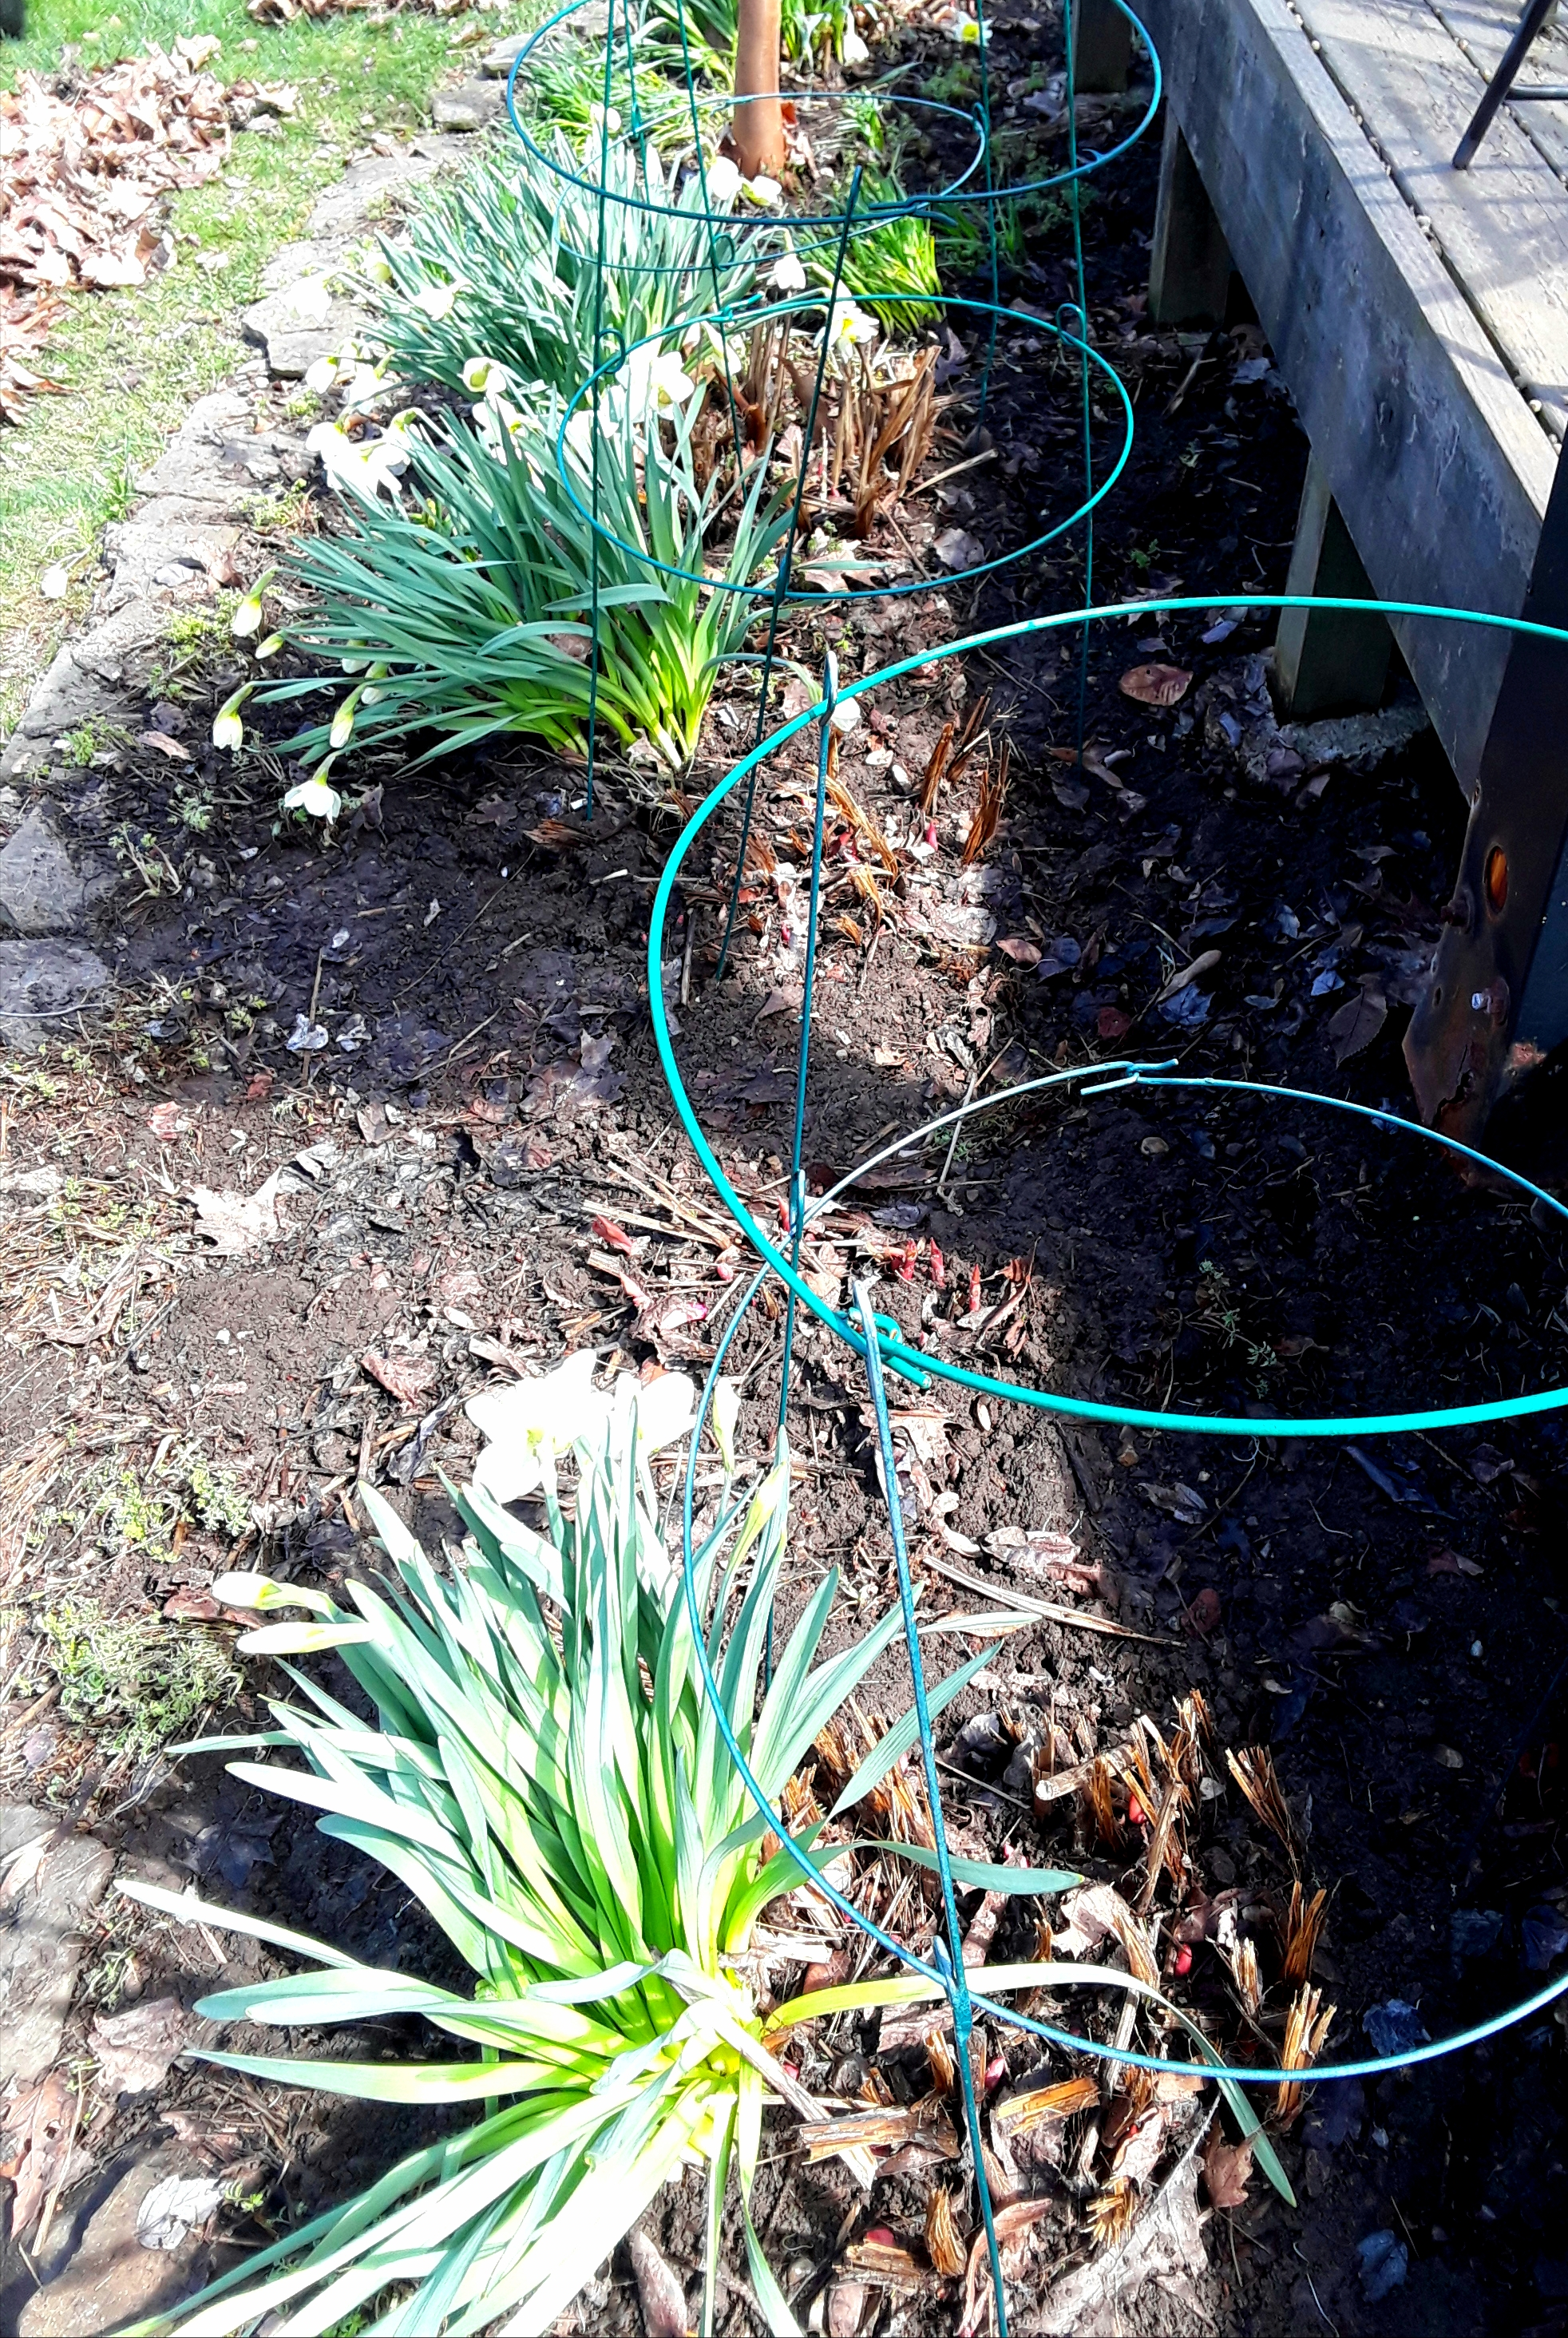 flower beds are raked out in April. Peony growth is just beginning to sprout through the soil.